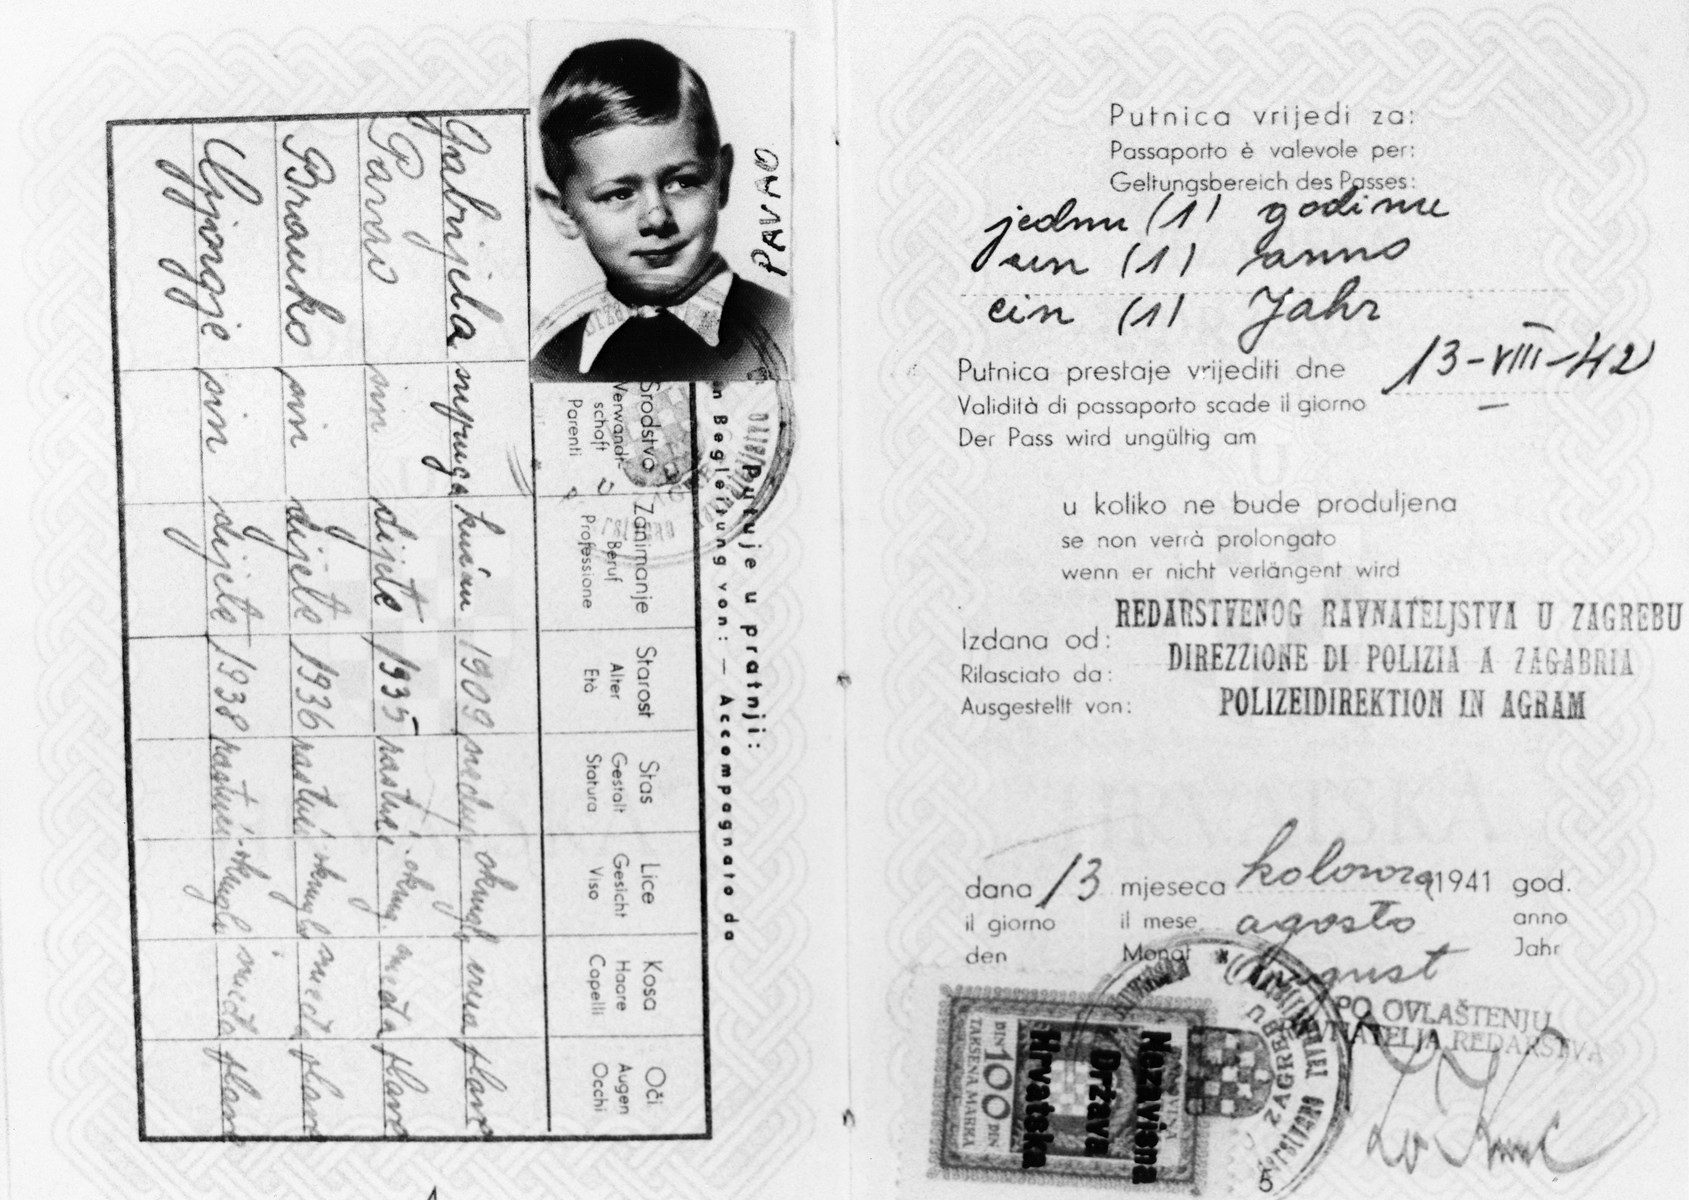 Croatian passport issued to a Jewish family, in Zagreb on August 13, 1941, with picture of Pavao's (Pavel) Deutsch.